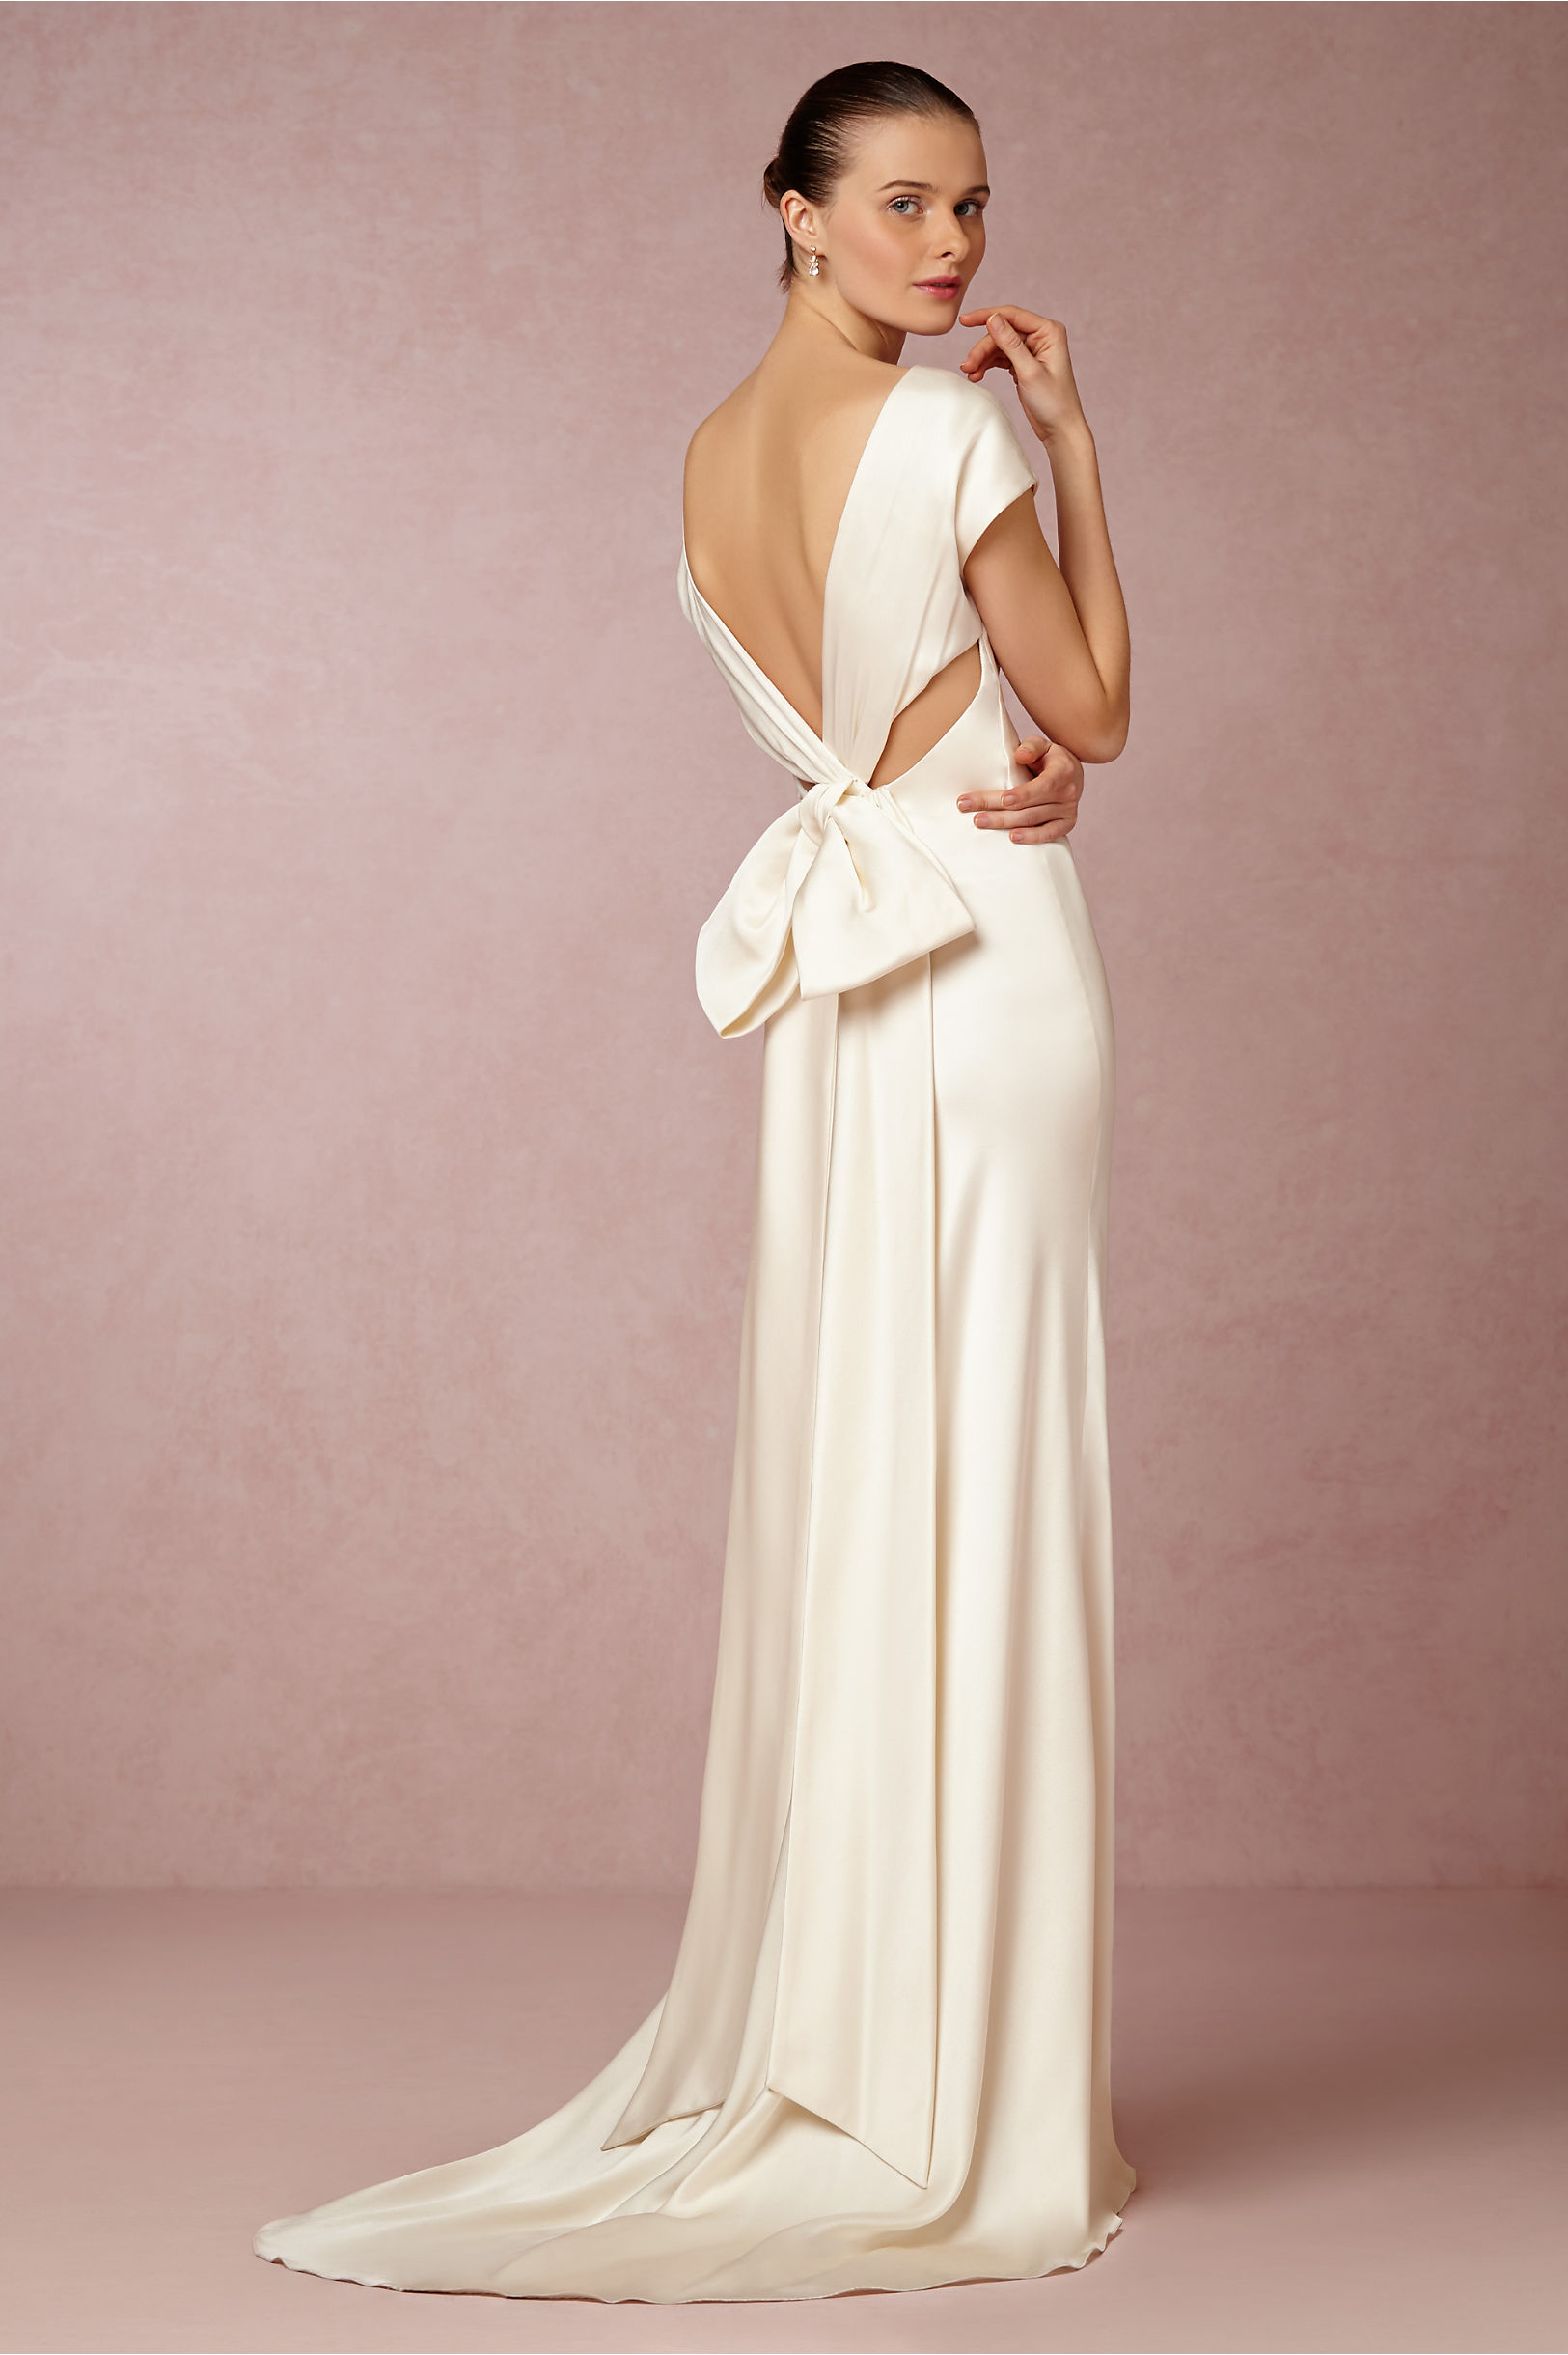 Funky Nicole Miller Evening Gown Vignette - Images for wedding gown ...